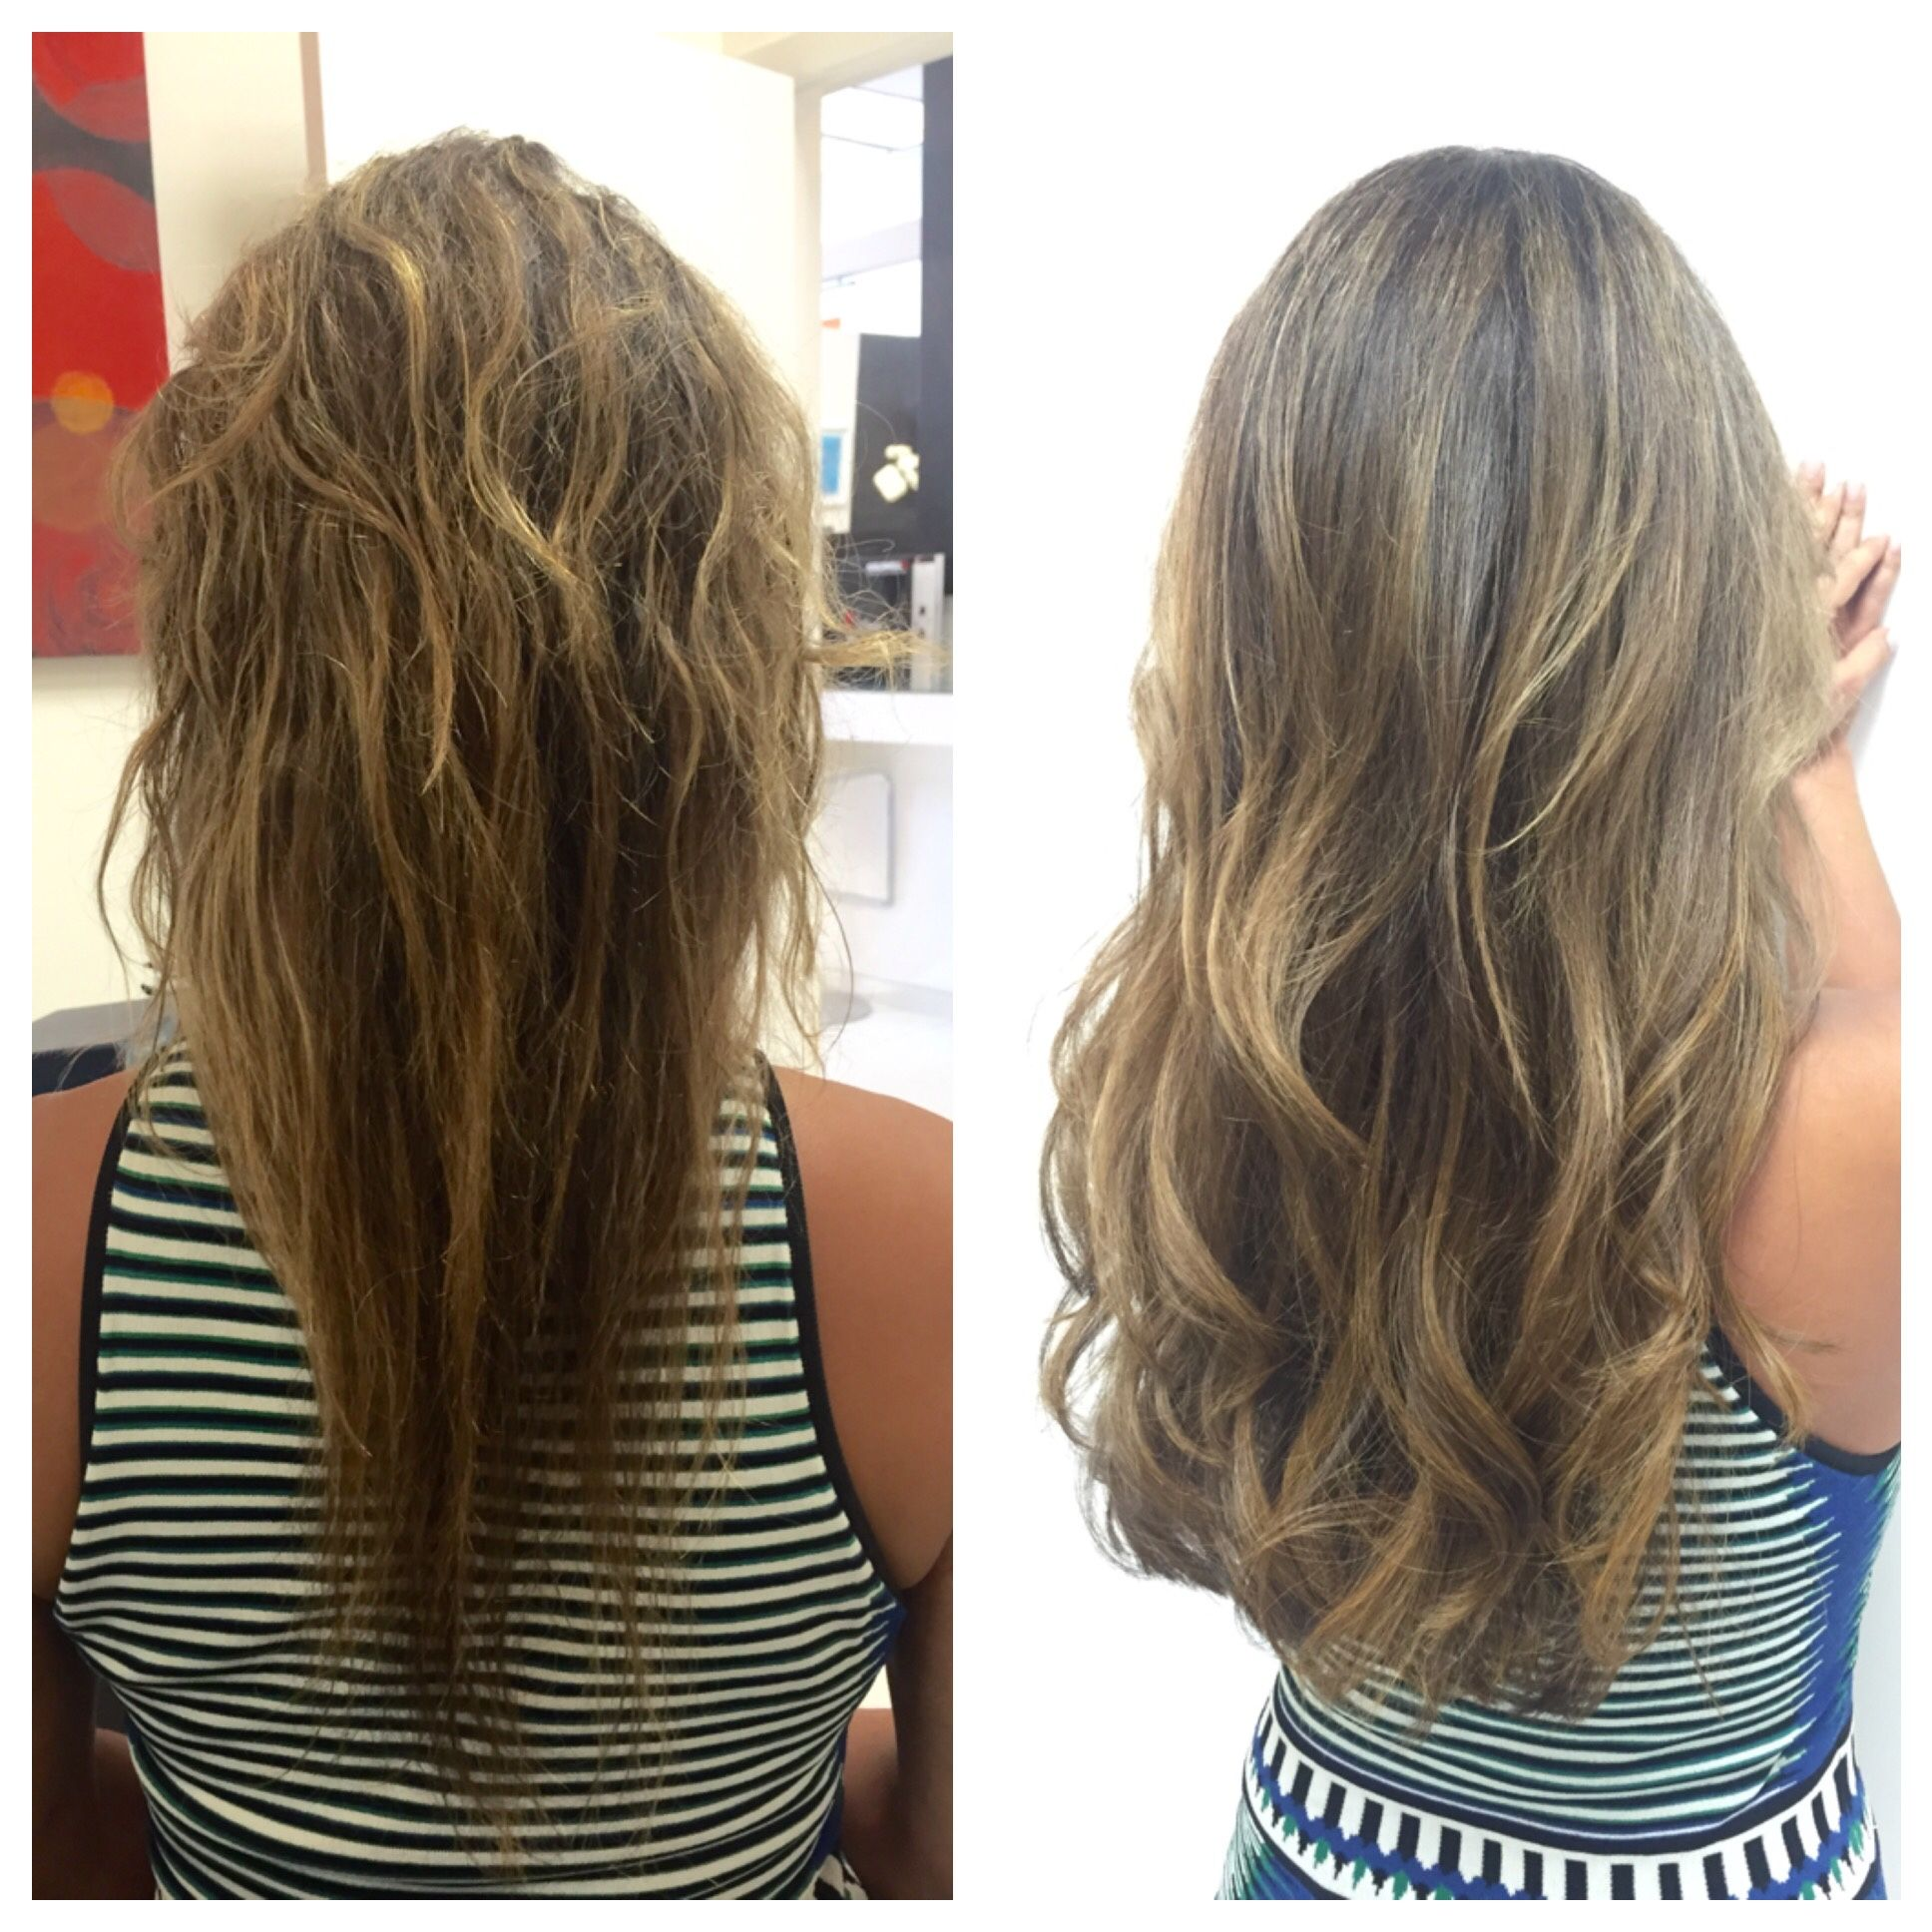 Tips On How To Maintain The Quality Of Hair Extensions Hair Extensions